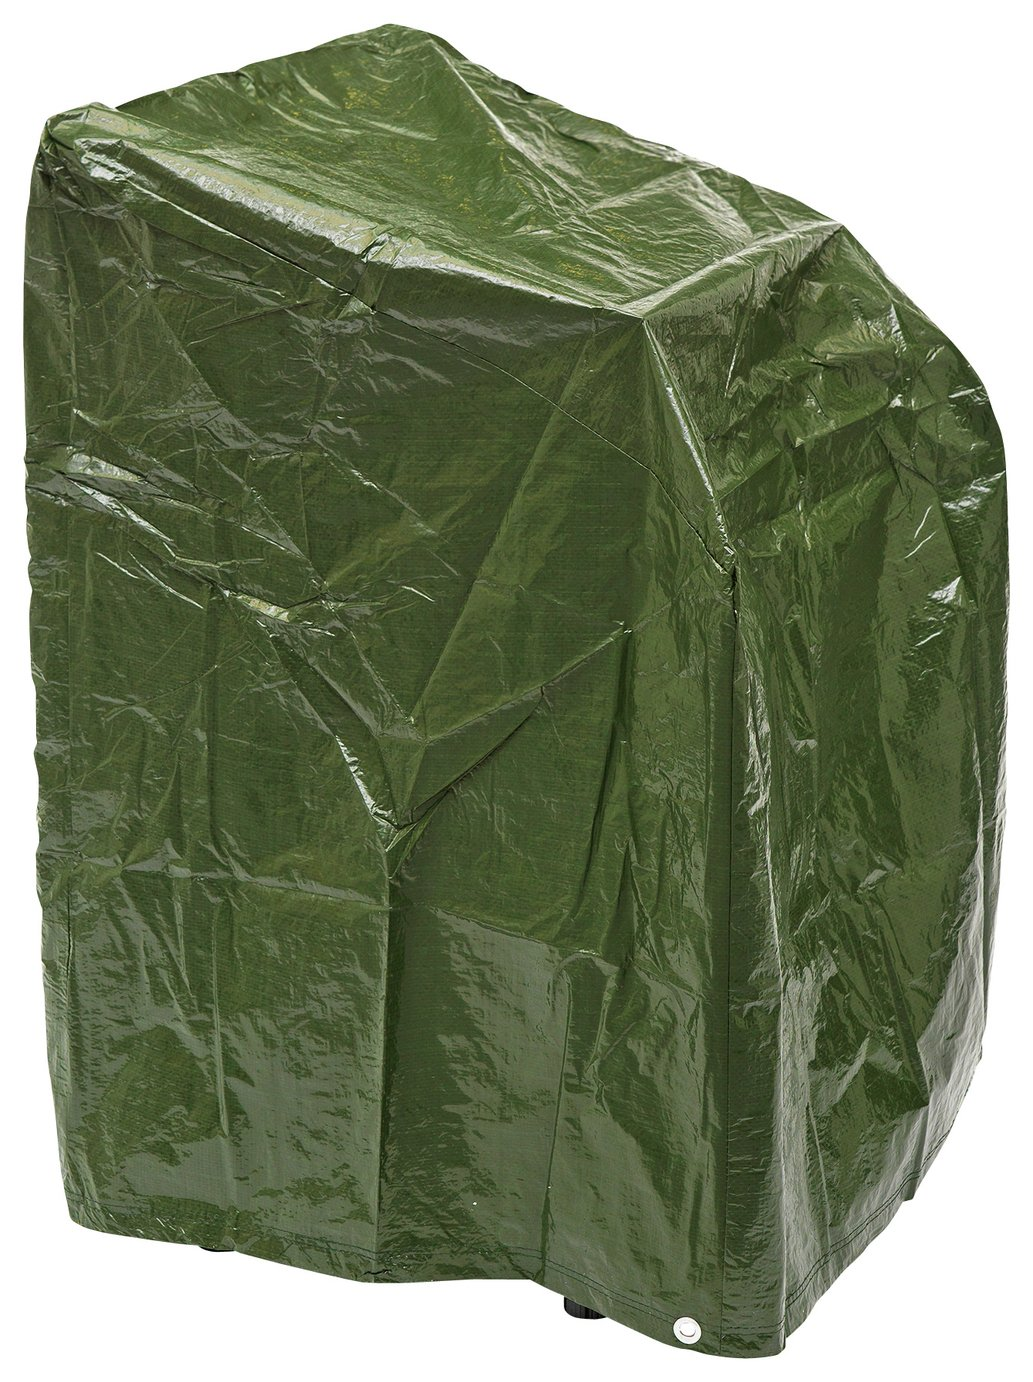 Argos Home - Basic Chair Stack Cover